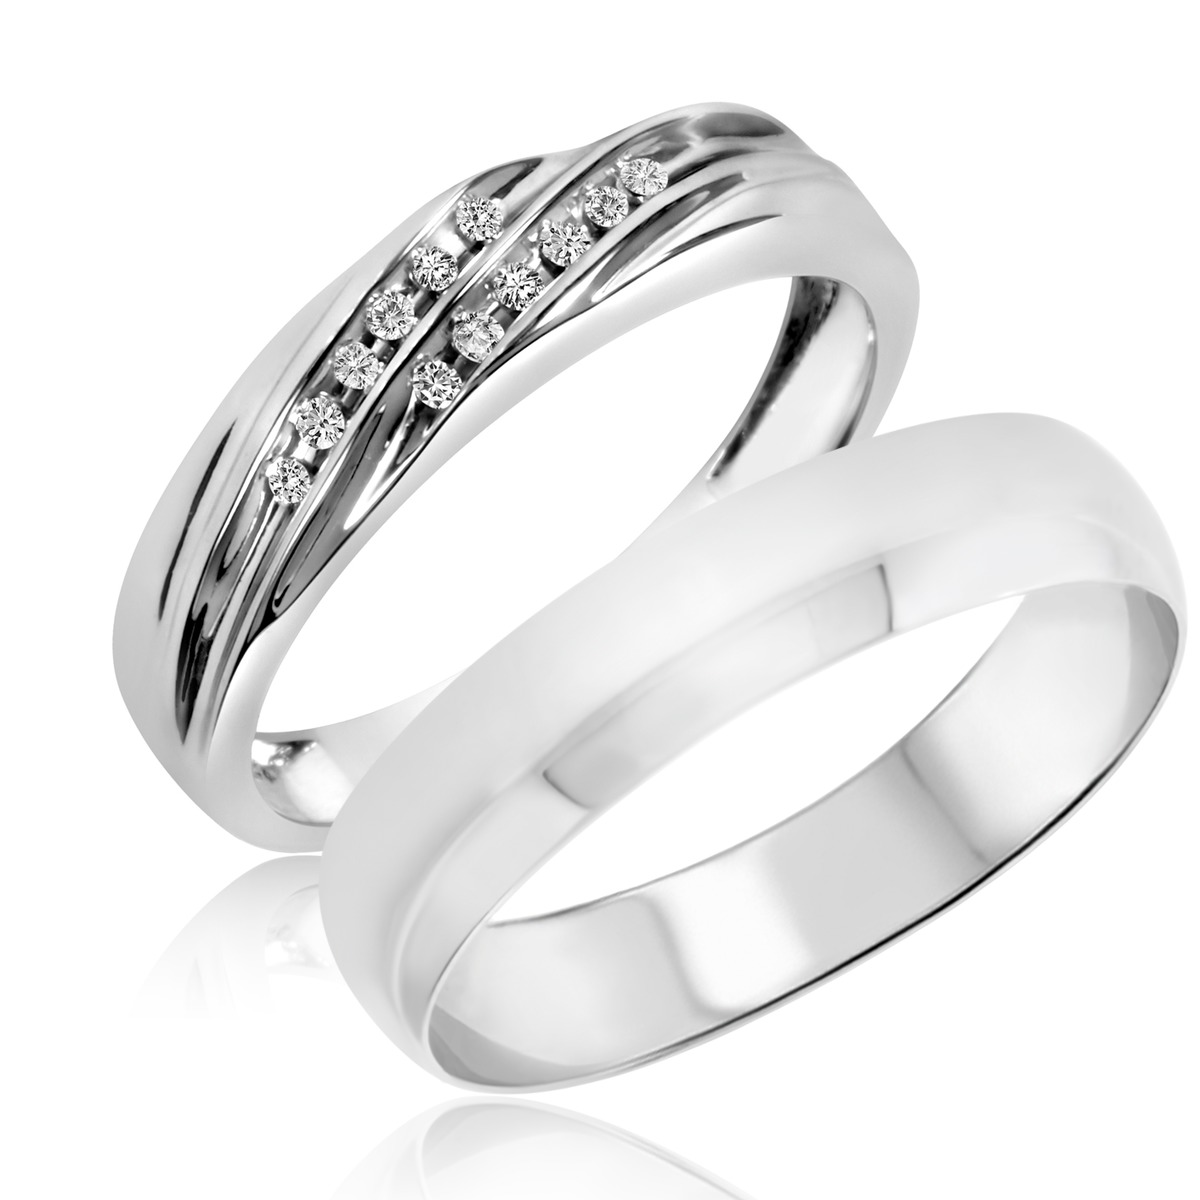 1/15 Carat T.W. Round Cut Diamond His and Hers Wedding Band Set 10K White Gold